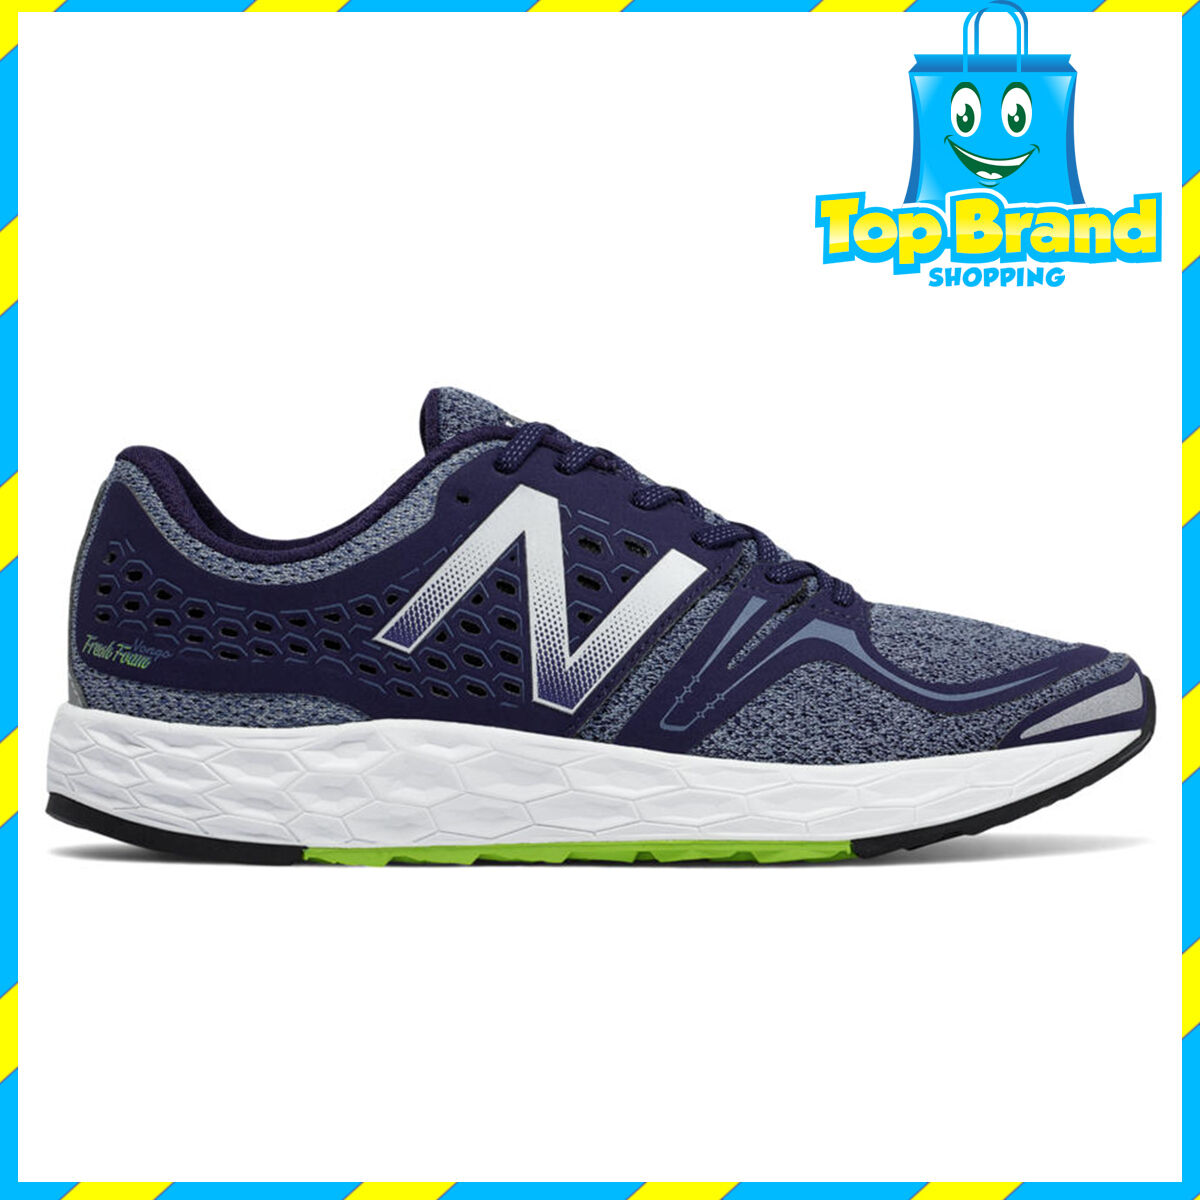 2E Men's Road shoe New Balance SPORTS running sport GYM shoes All Sizes   240